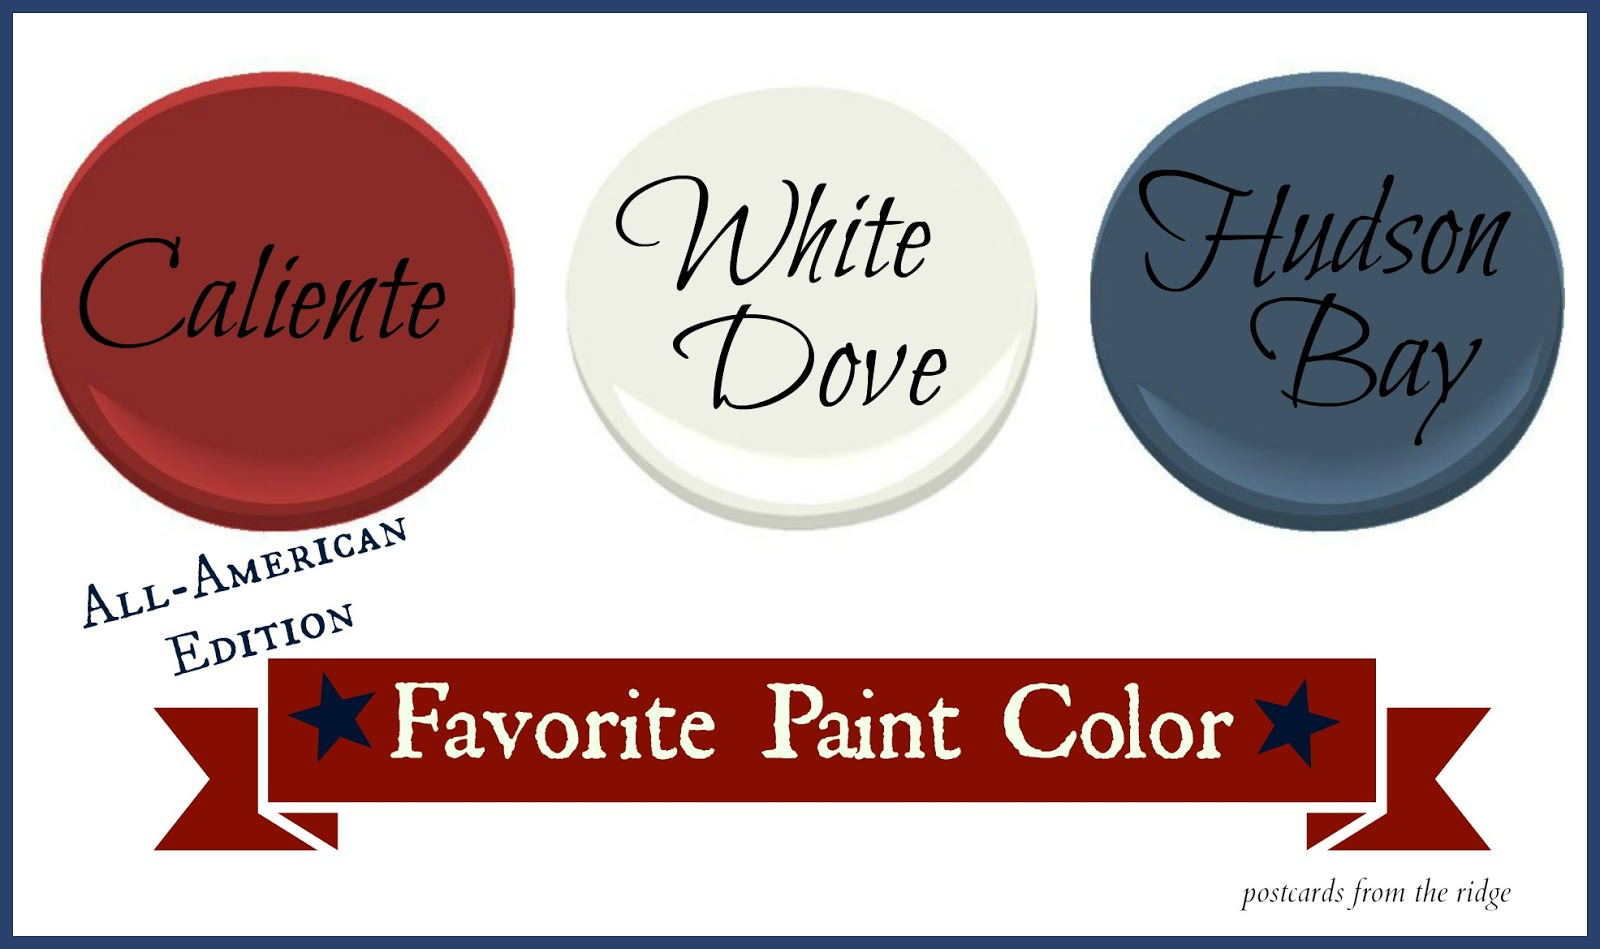 Favorite Paint Color All American Edition